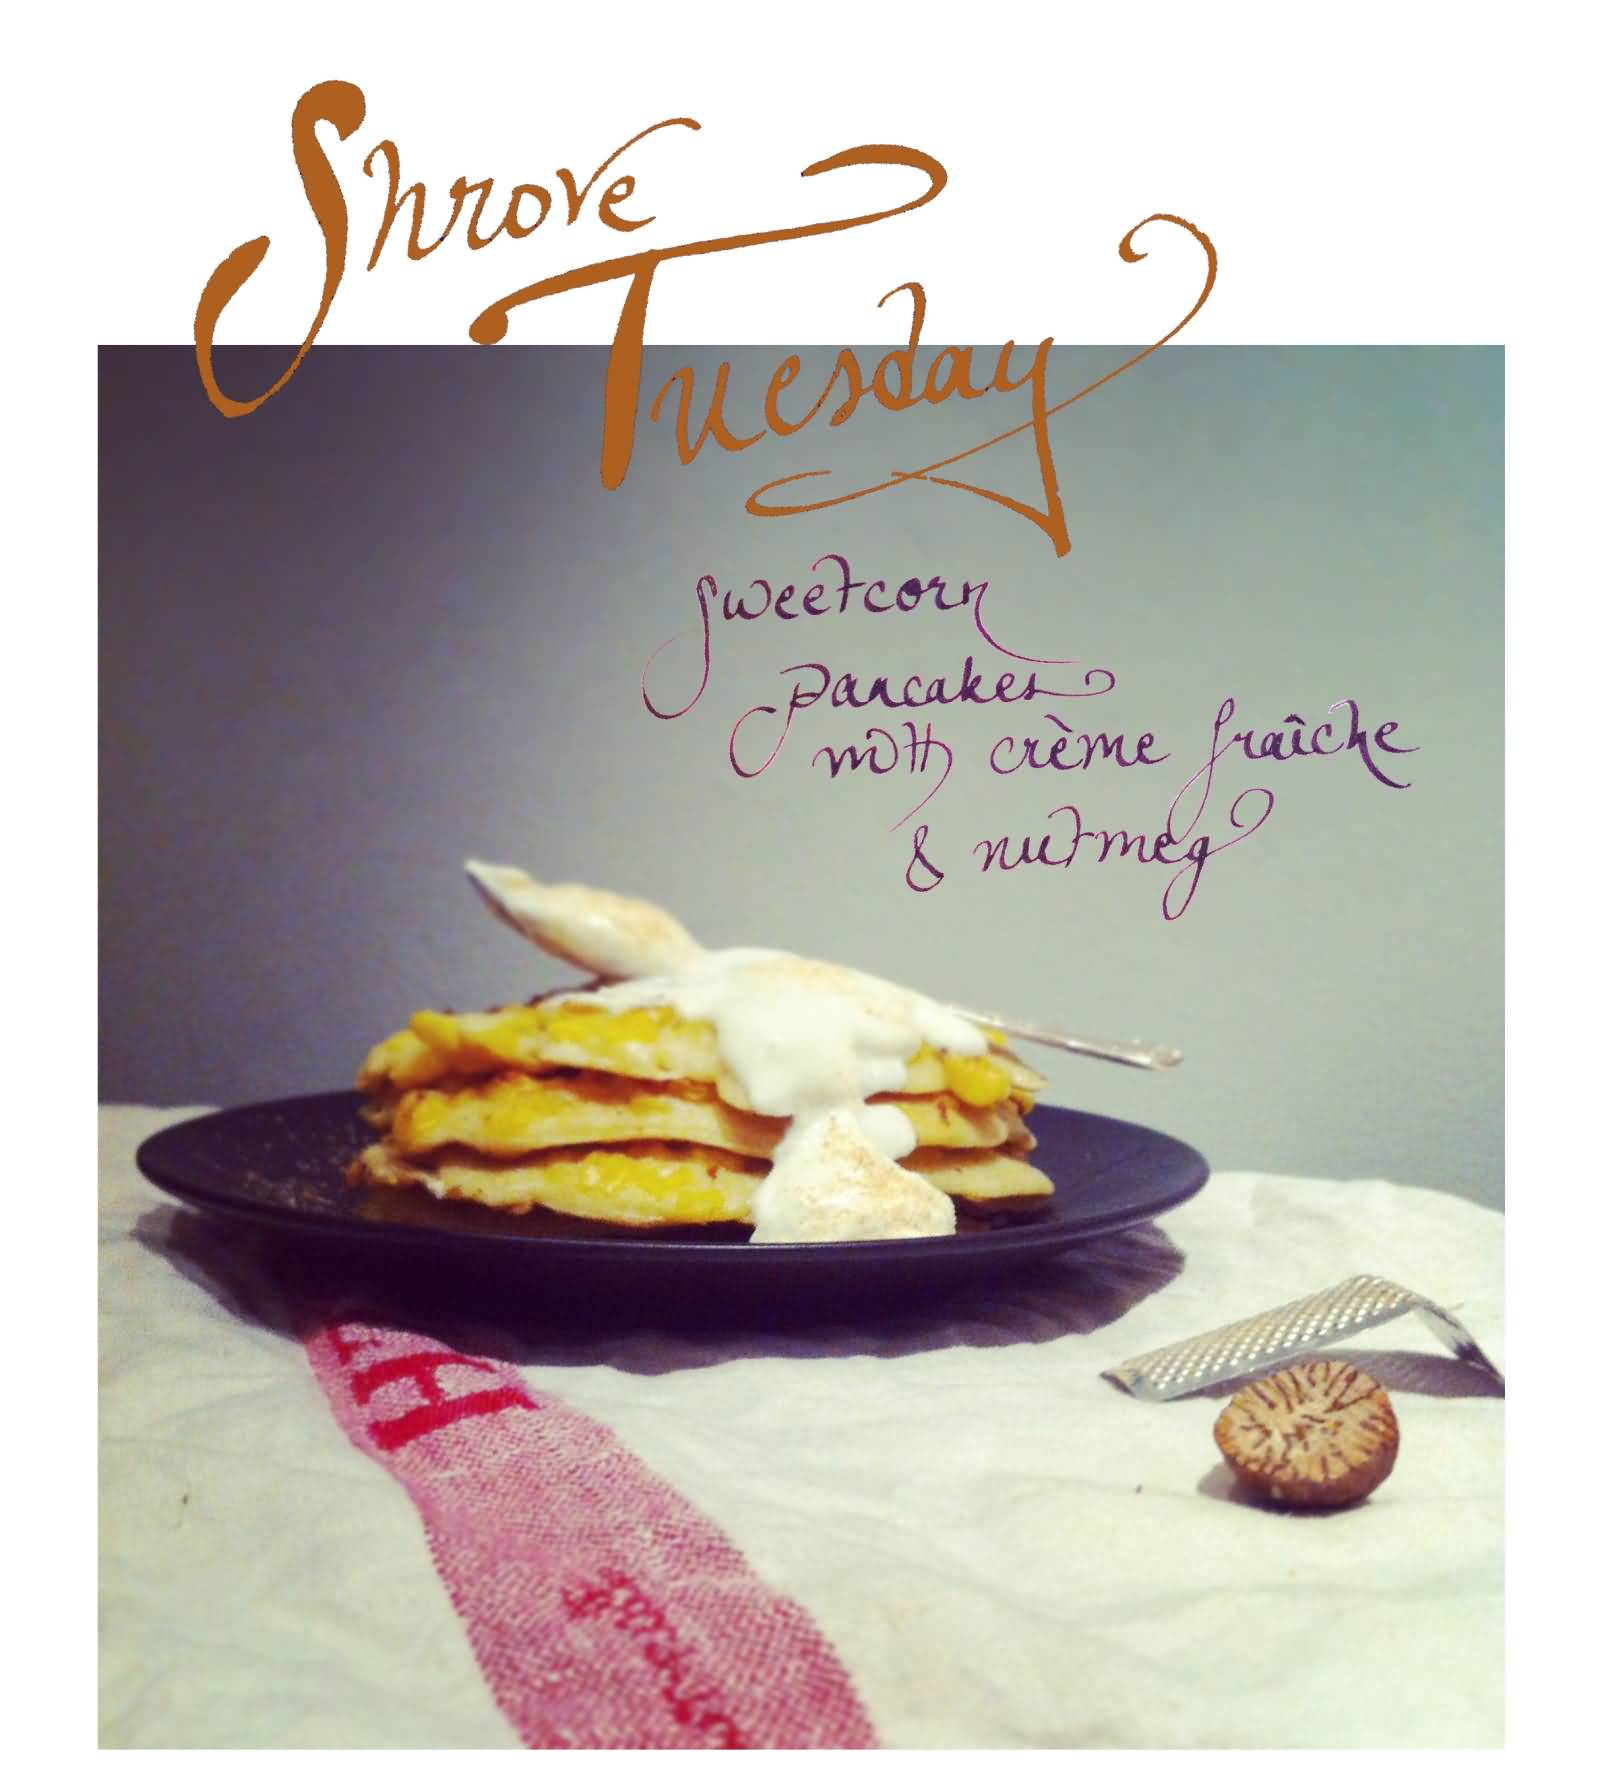 shrove tuesday - photo #15